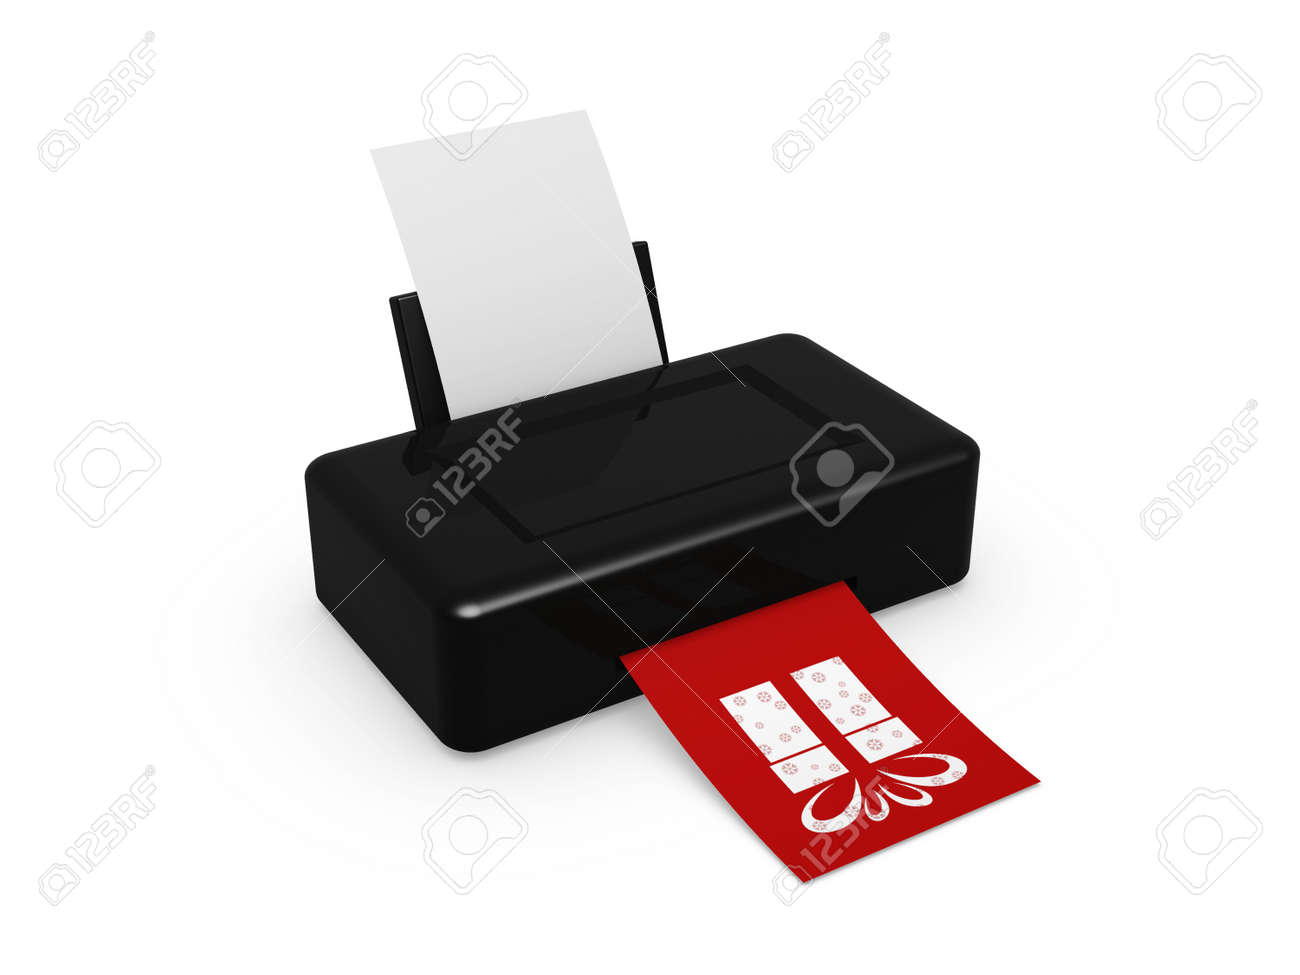 black printer print gift image on white background Stock Photo - 11739976